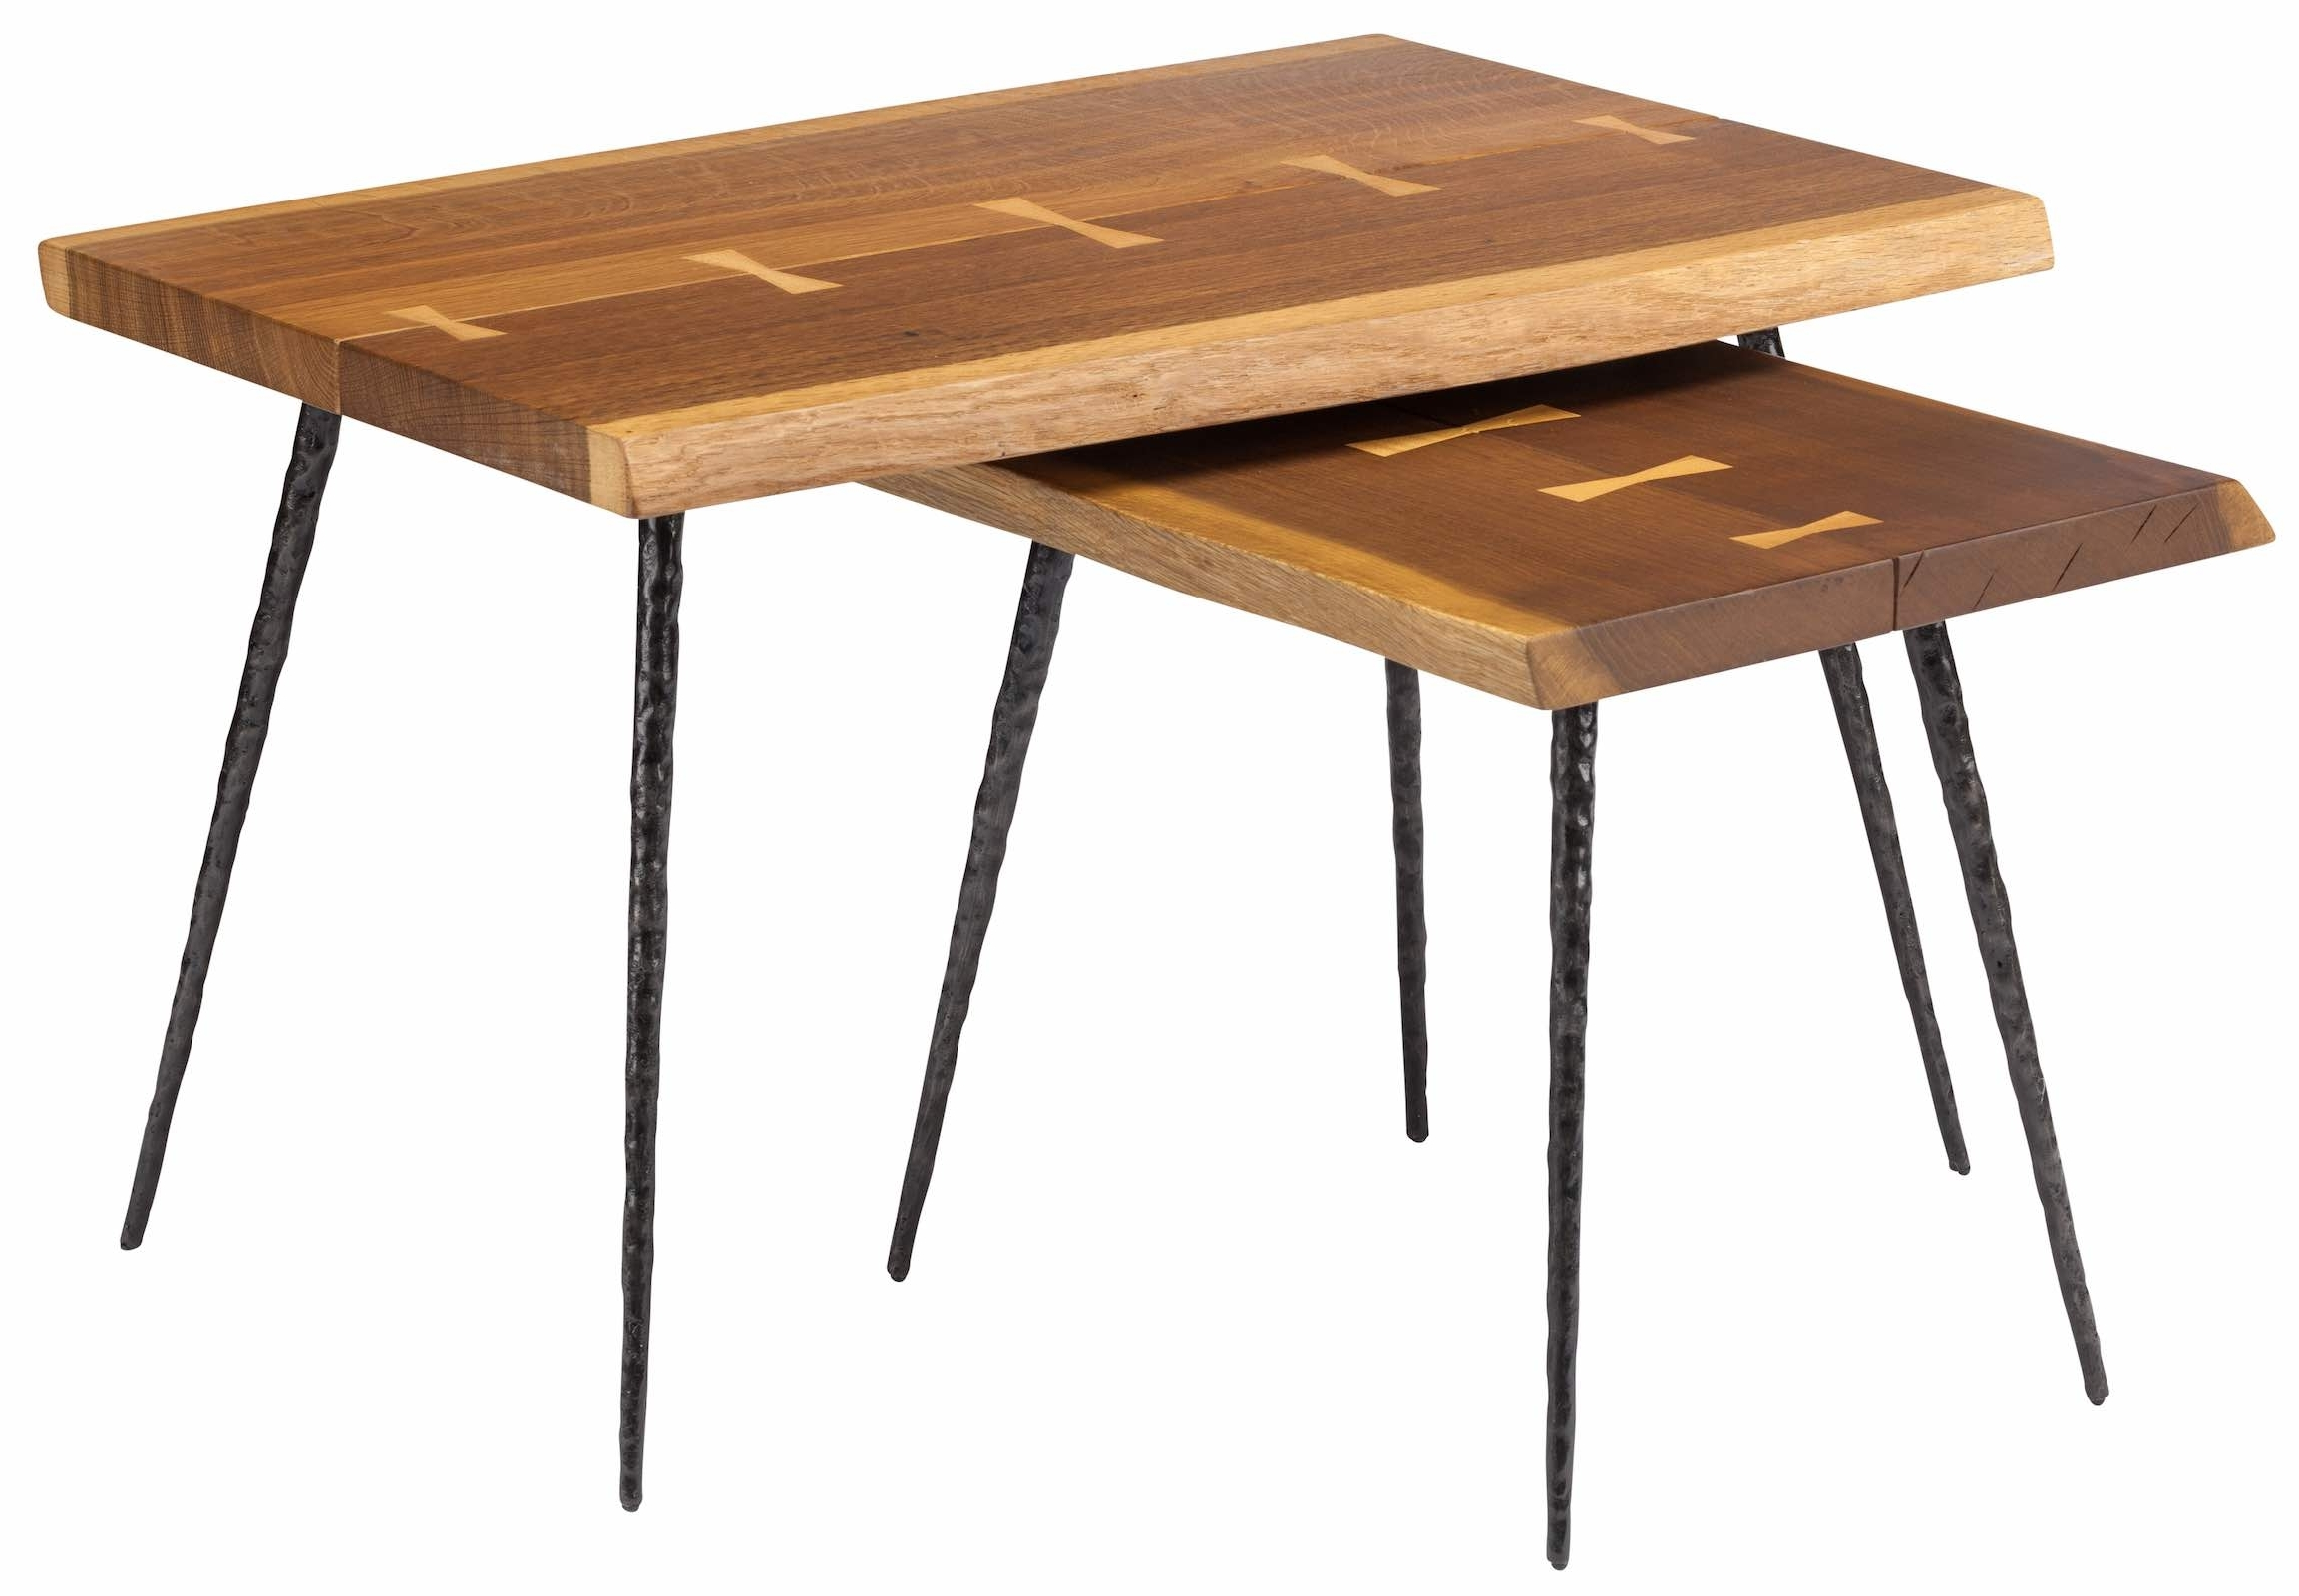 Nexa Nesting Side Tables In Smoked Oak And Cast Iron Feet Regarding Preferred Smoked Oak Side Tables (View 6 of 20)